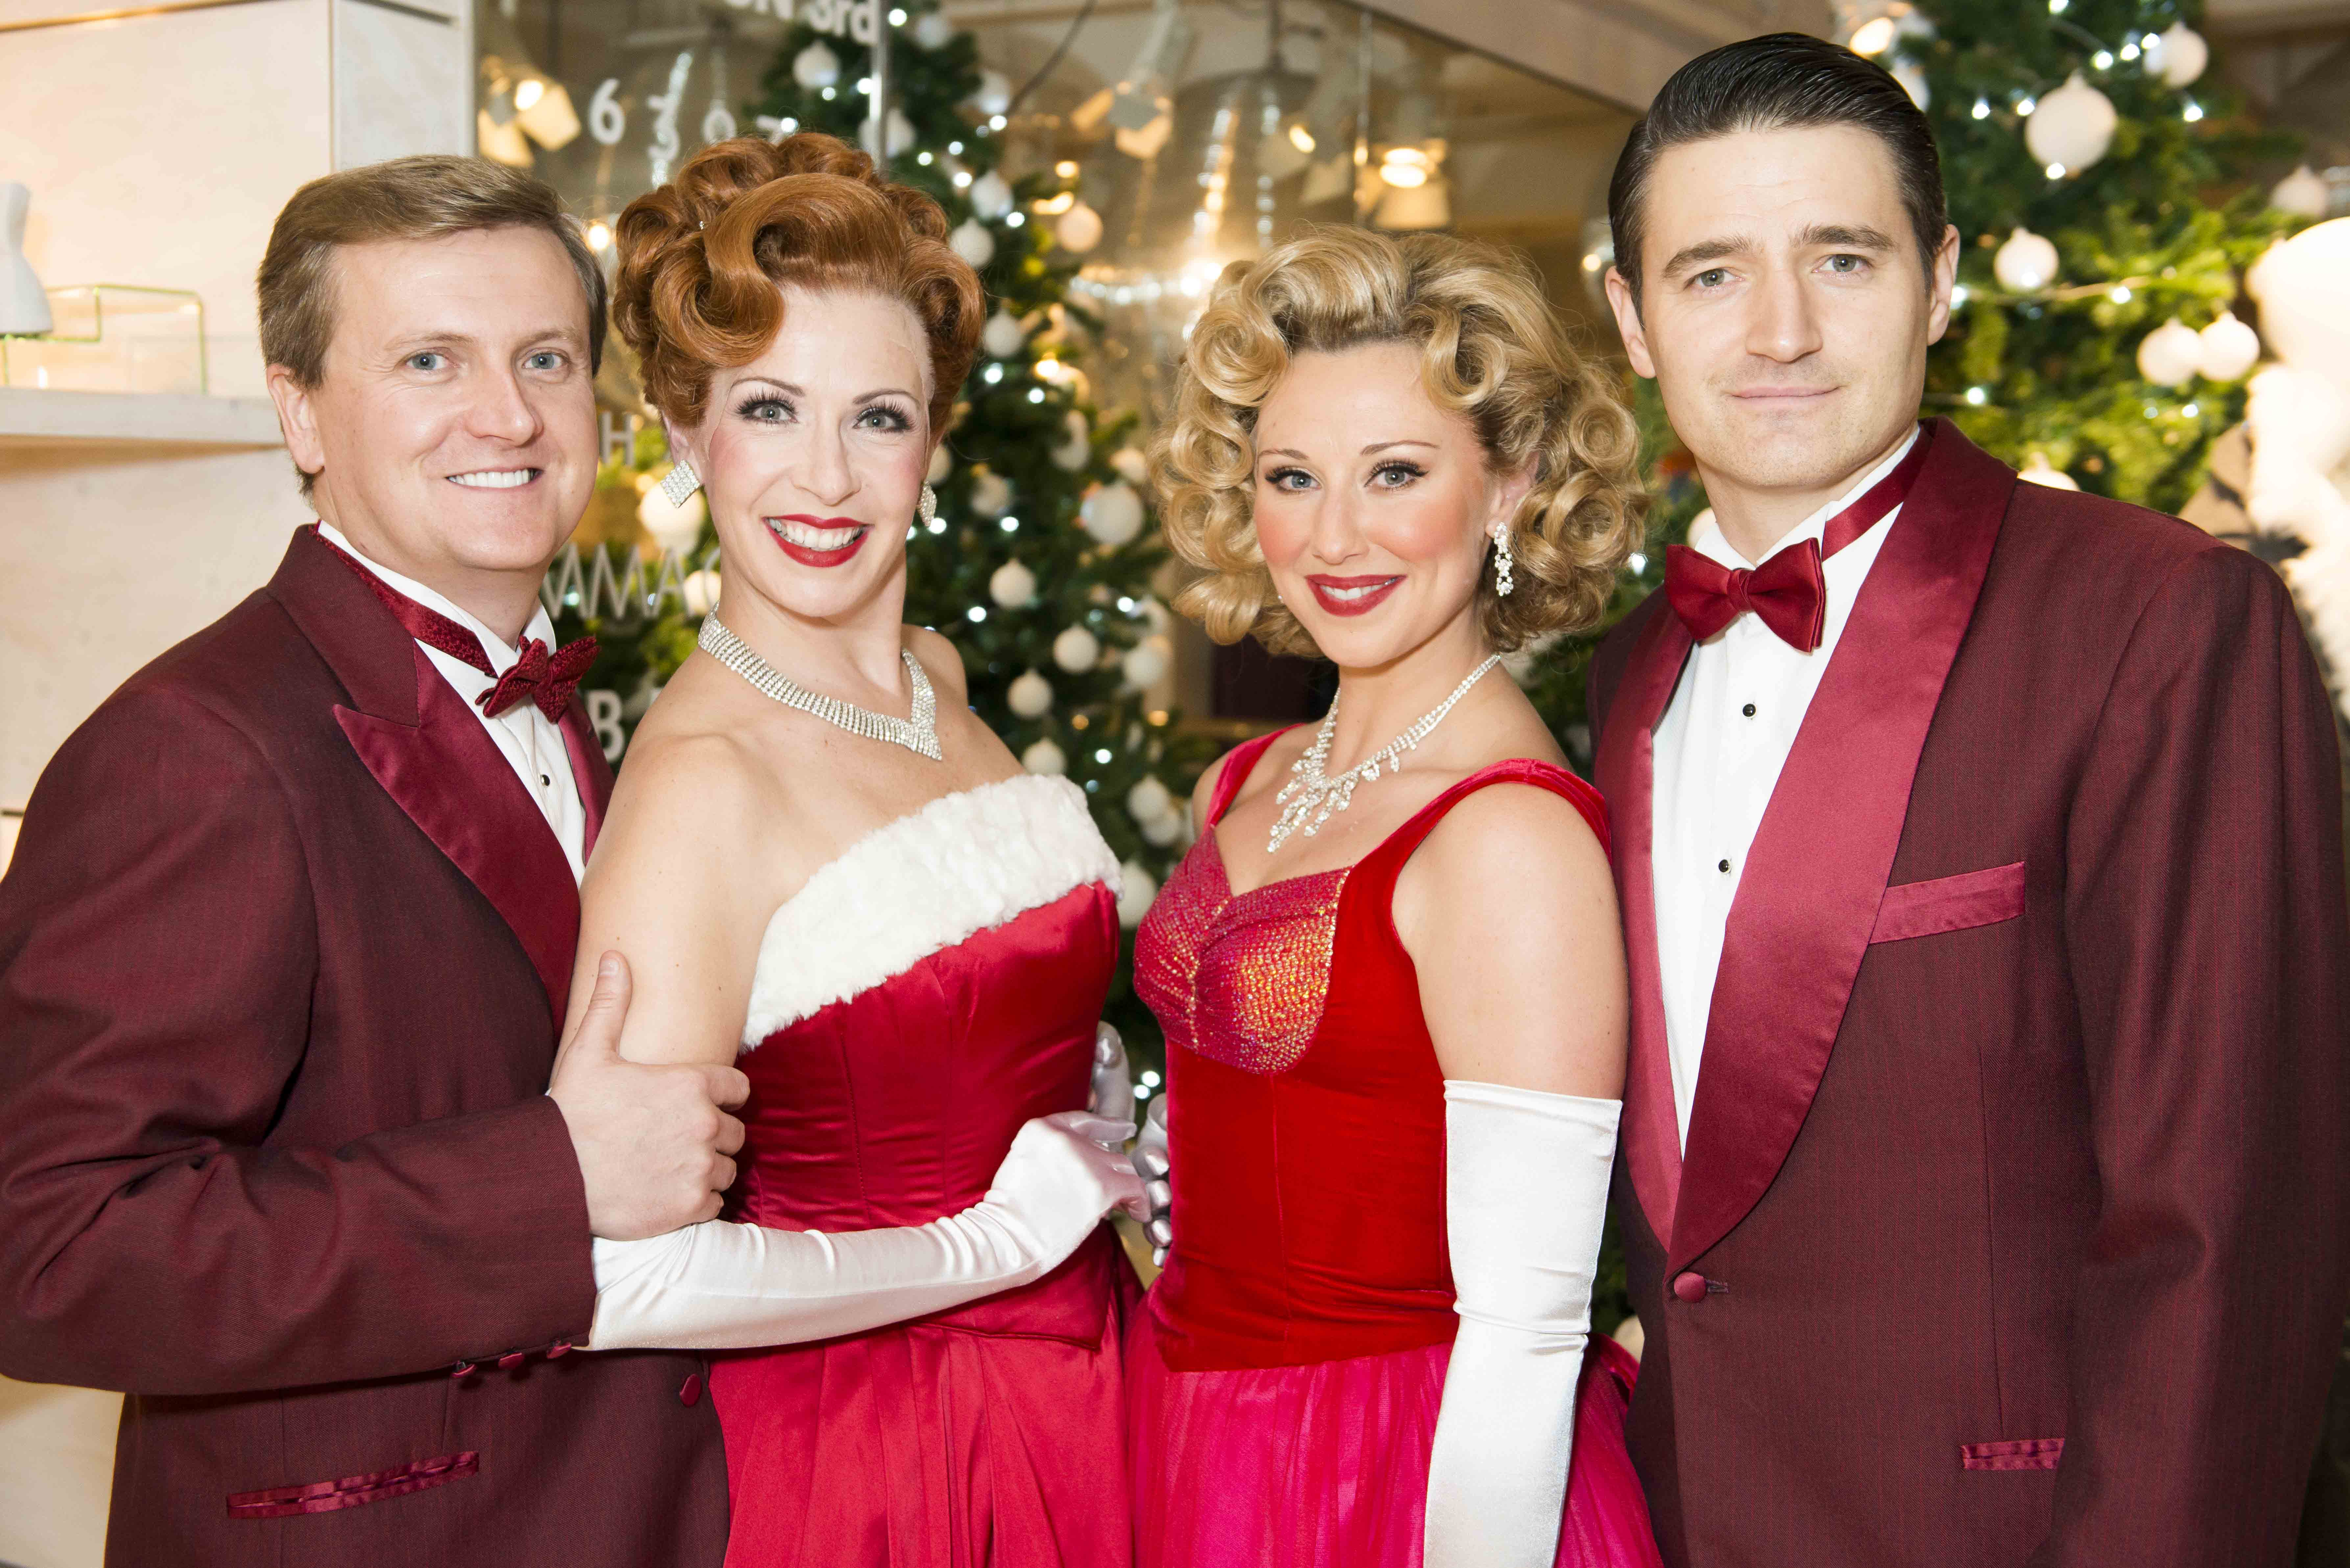 Aled Jones, Tom Chambers, Wendi Peters, Graham Cole and the Cast of White Christmas The Musical perform the London Premiere of the title song outside a snowy Fenwick of Bond Street, sixty years after the iconic film starring Bing Crosby premiered, and 10